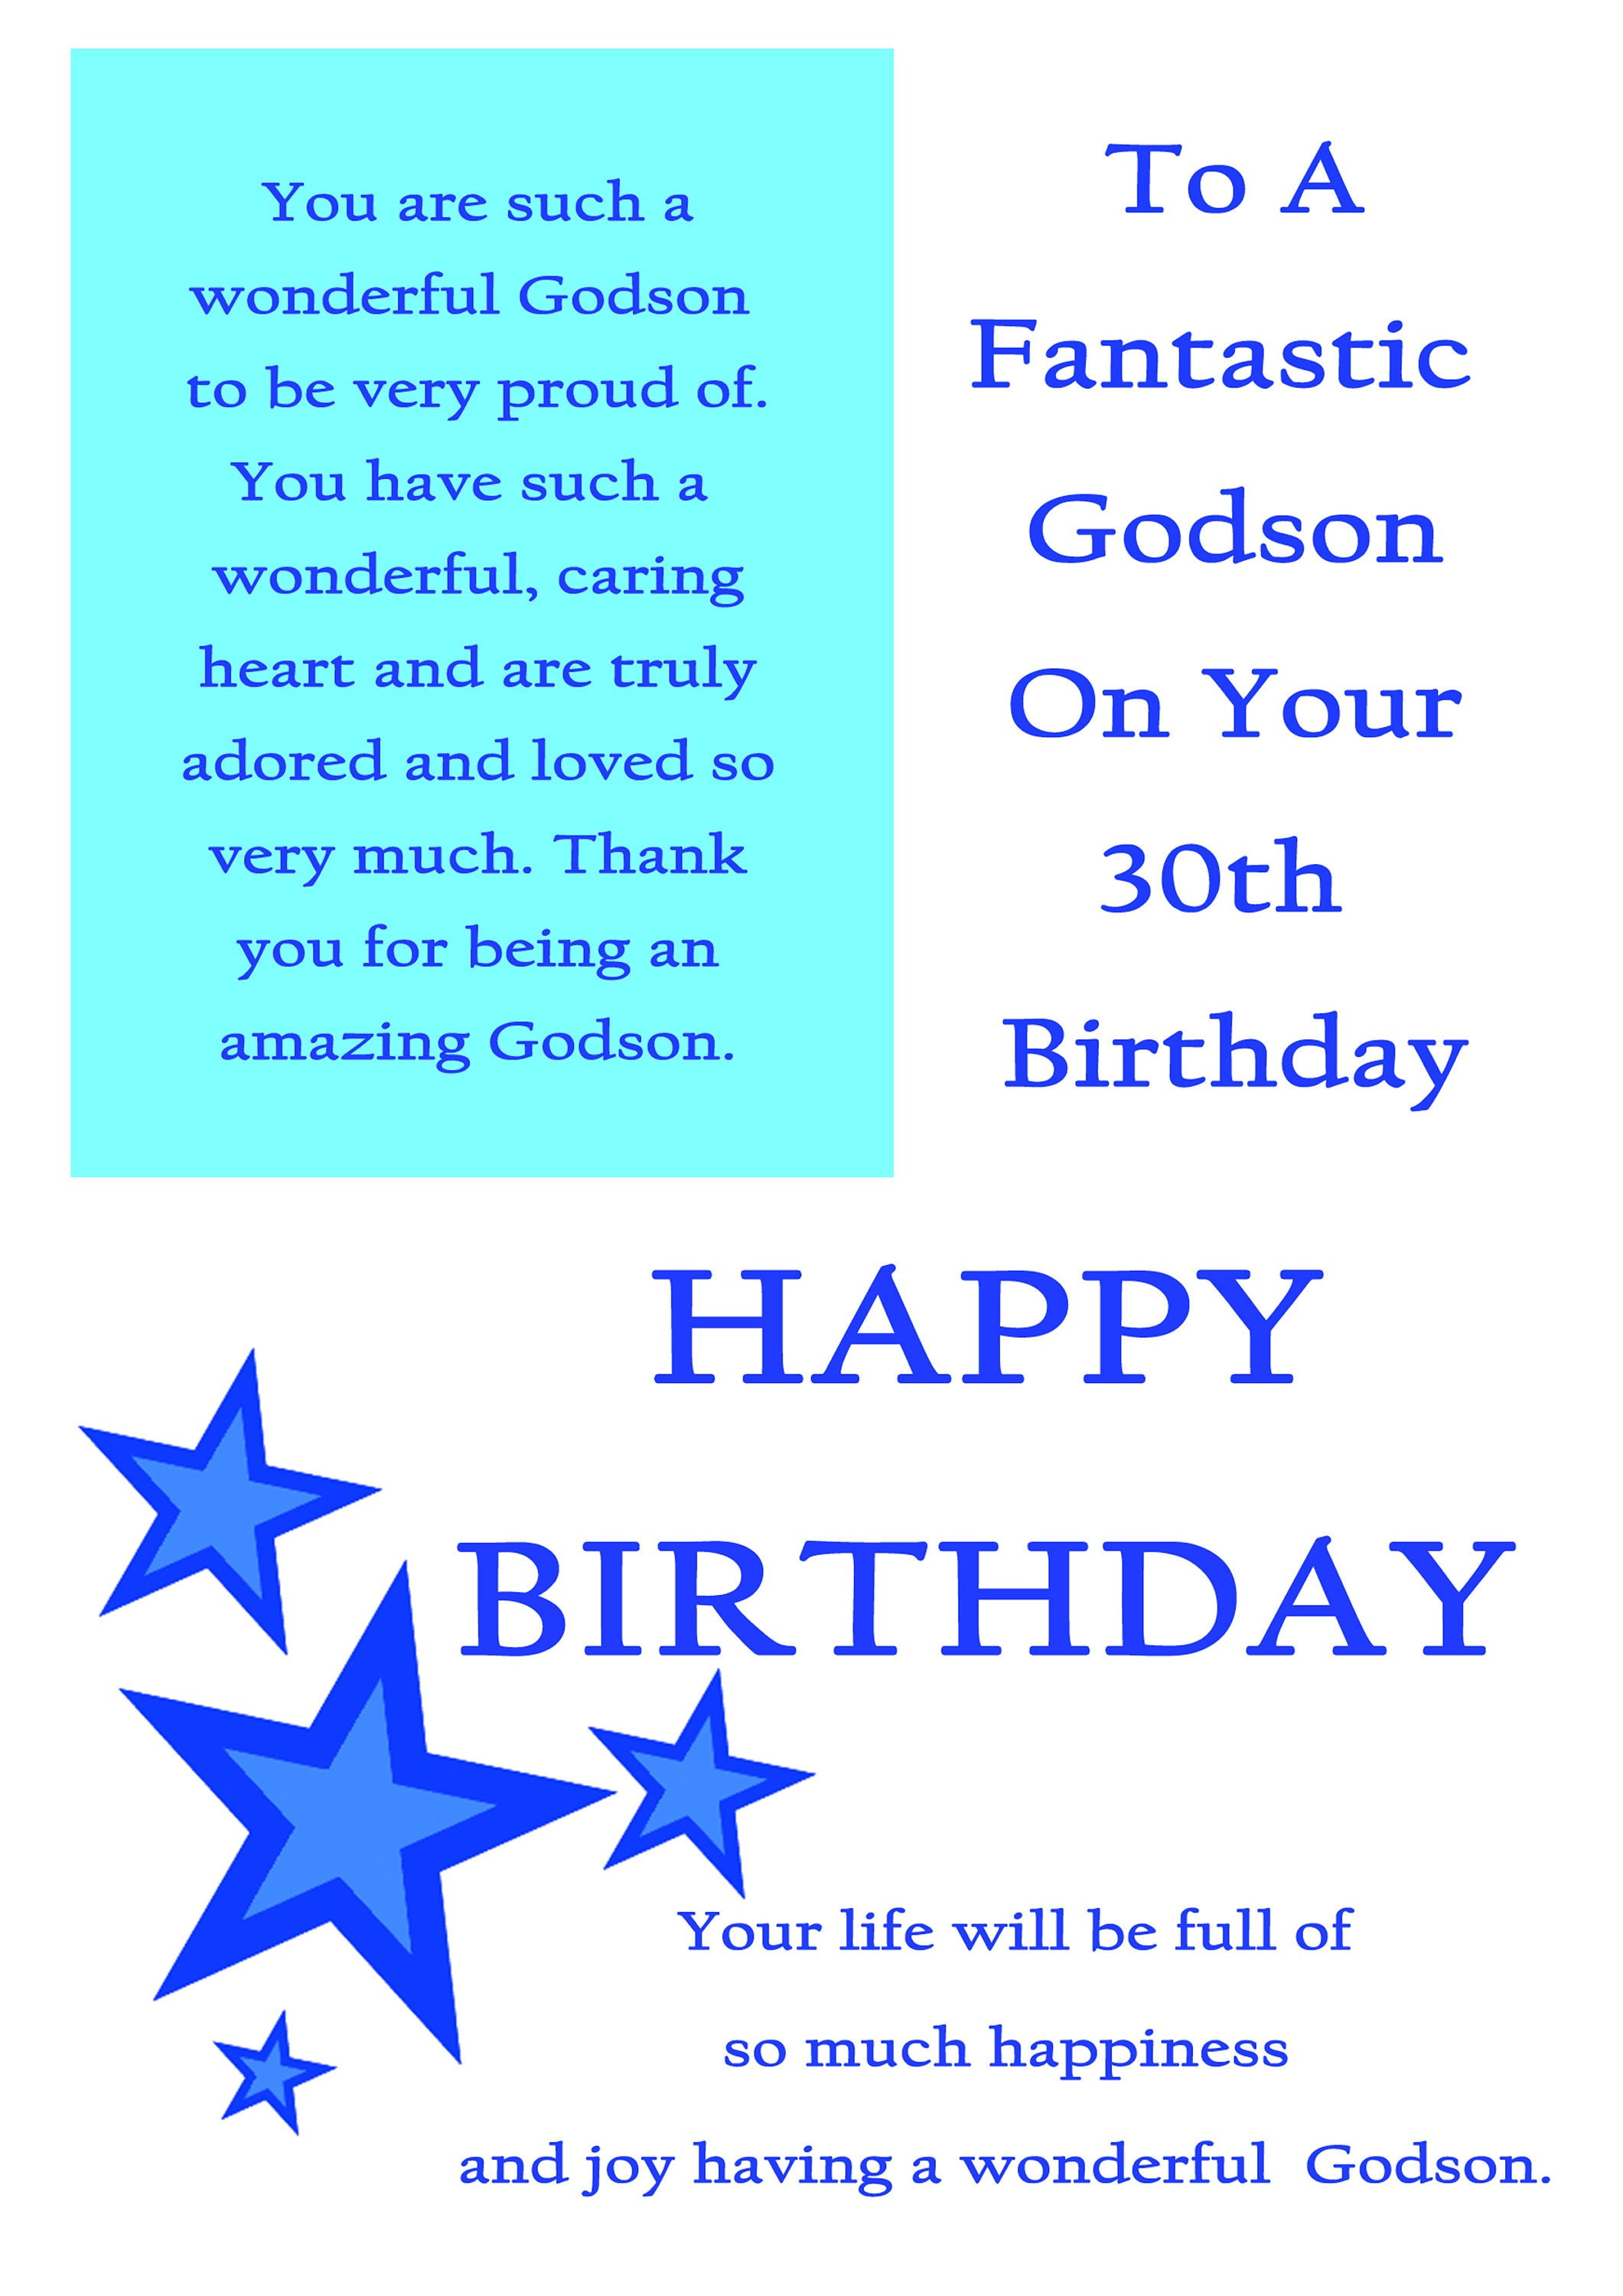 Godson 30 Birthday Card With Removable Laminate